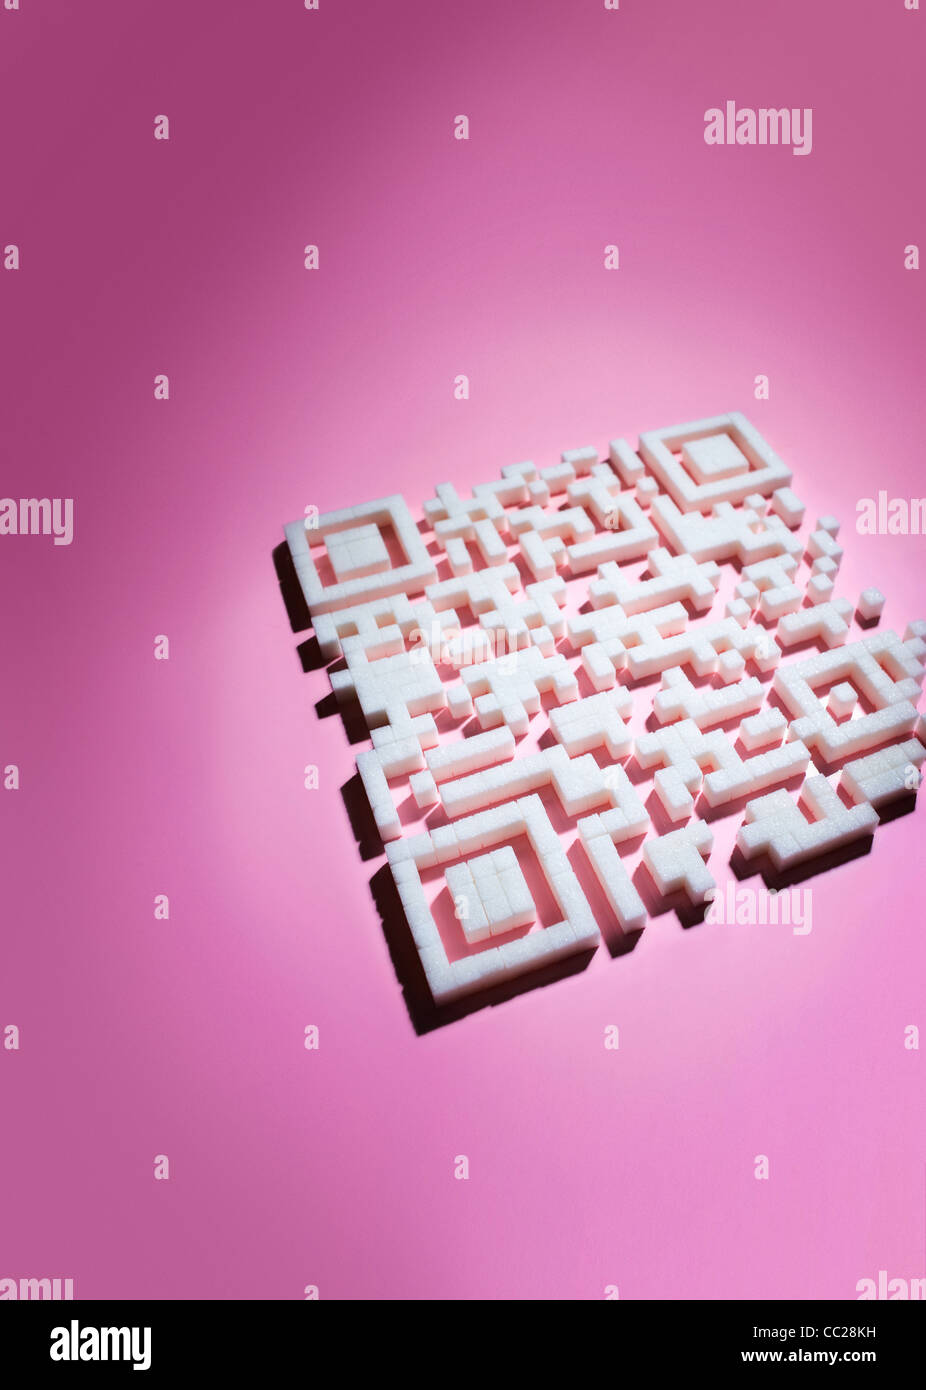 A scan code made of sugar cubes - Stock Image